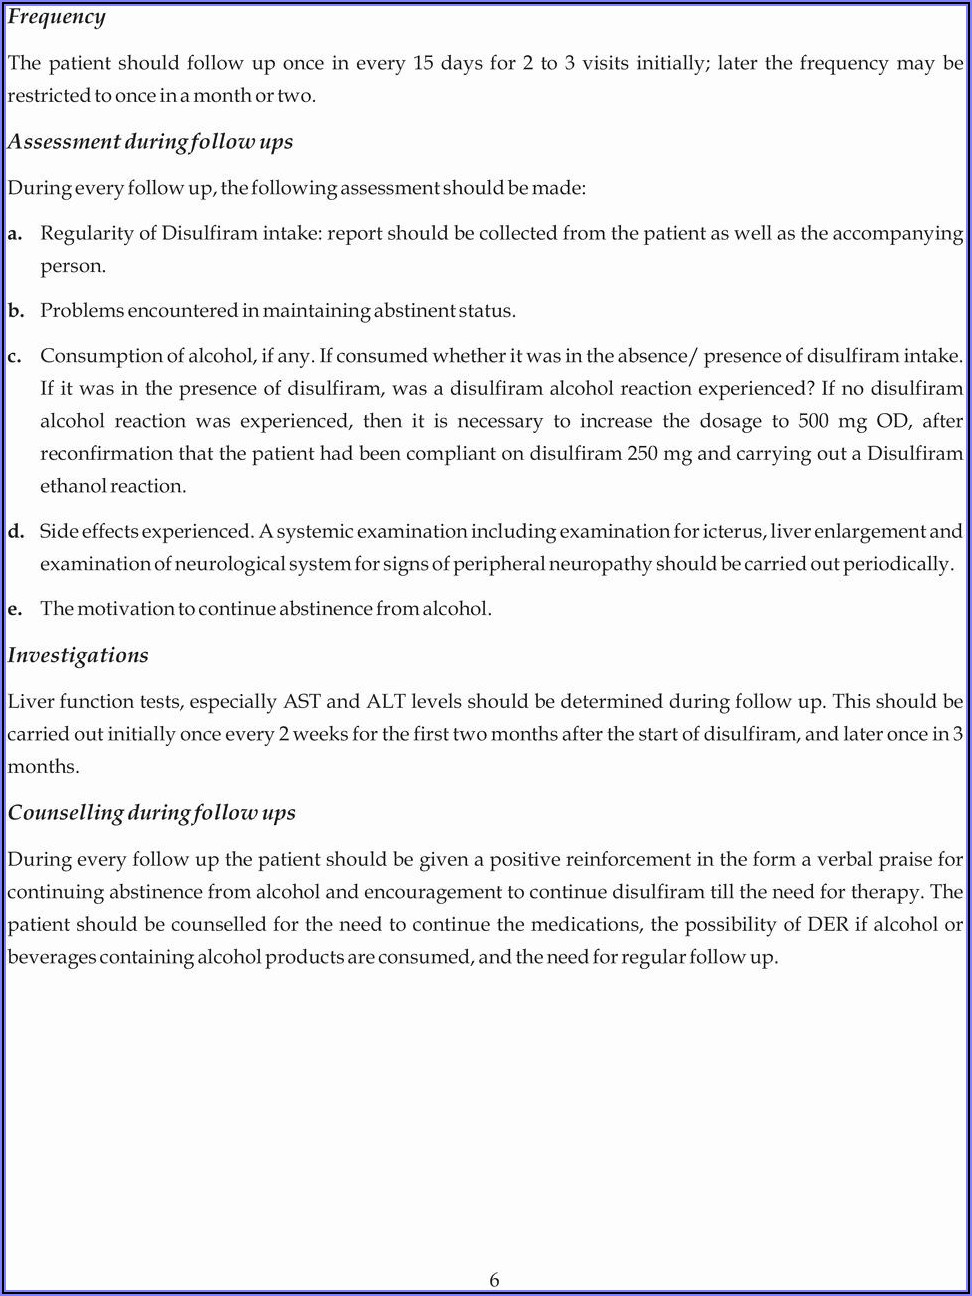 Psychotherapy Intake Form Pdf